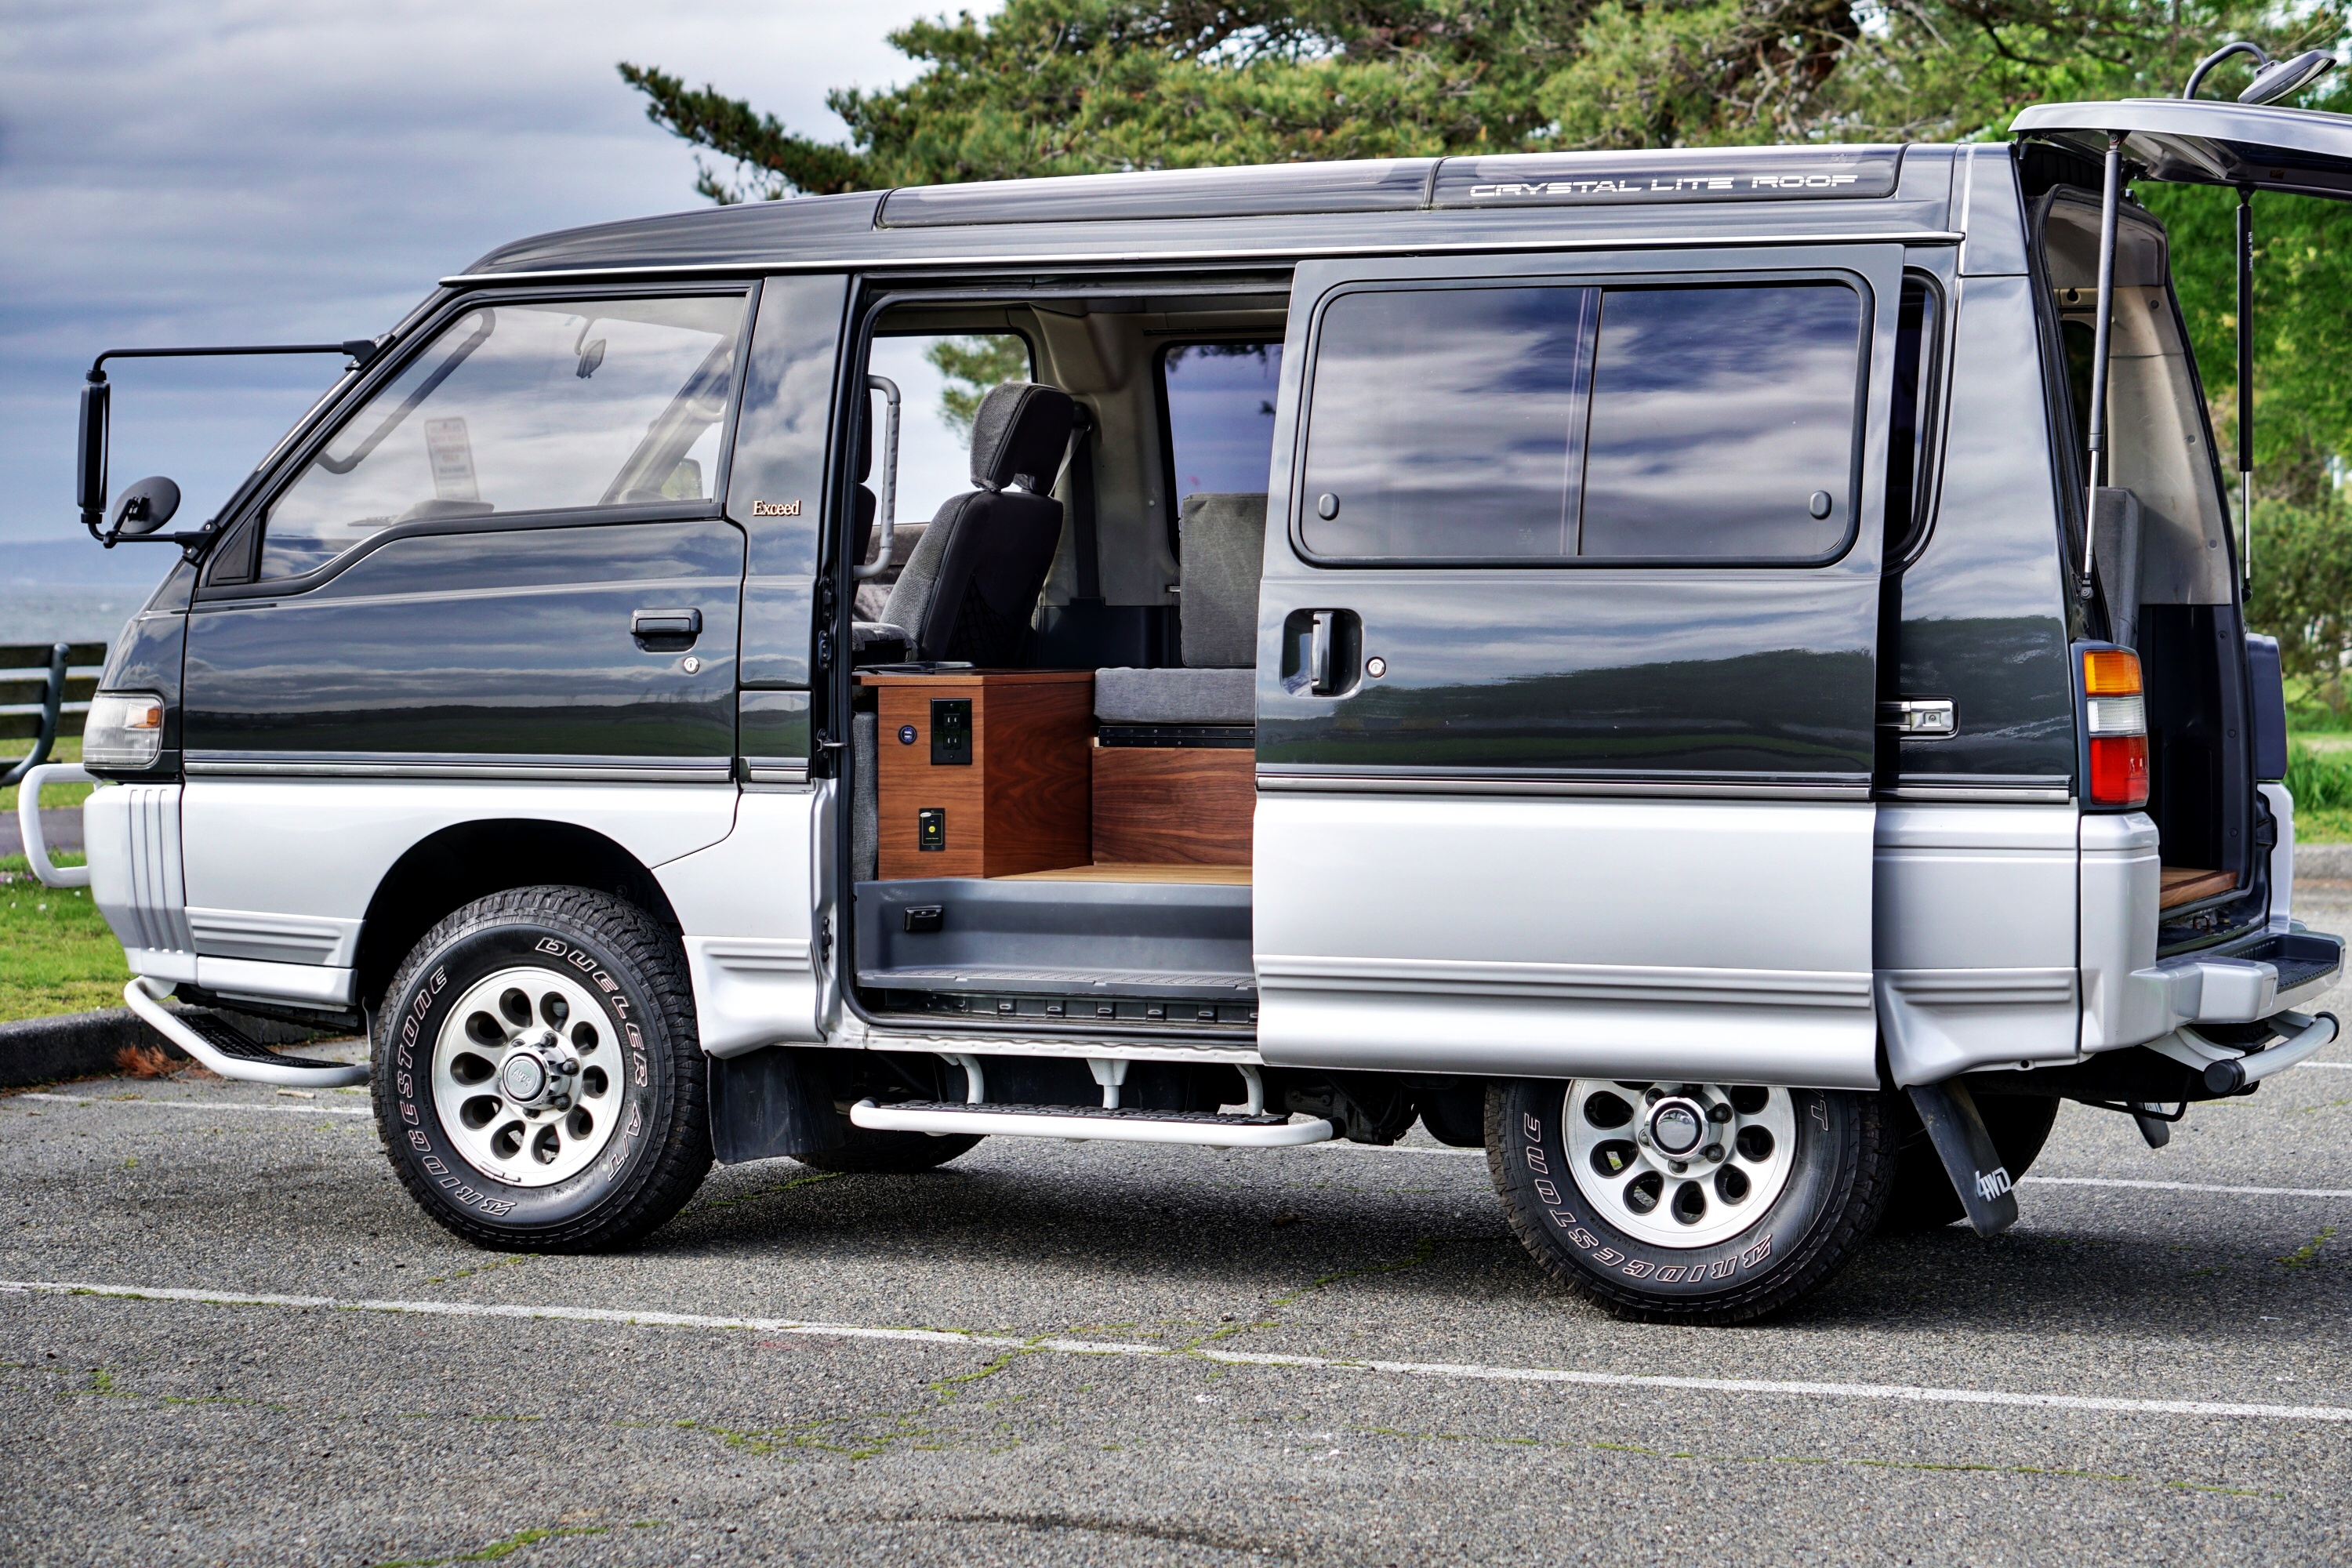 Rare four-wheel-drive van transformed into simple camper